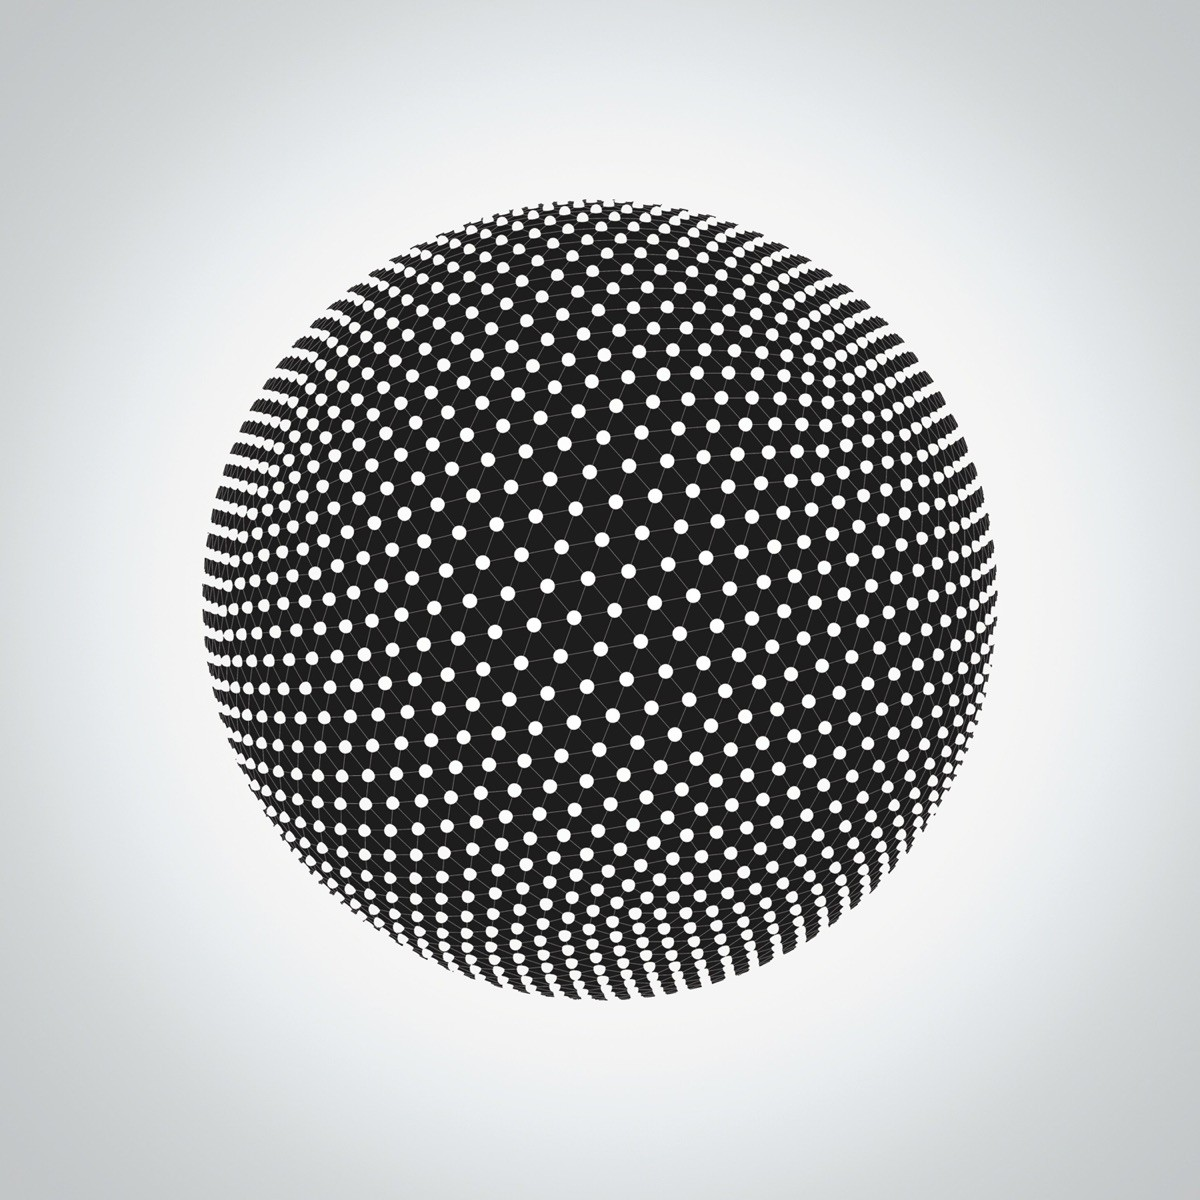 TesseracT - Altered State (2020 Re-Issue) VINYL - 19439789101